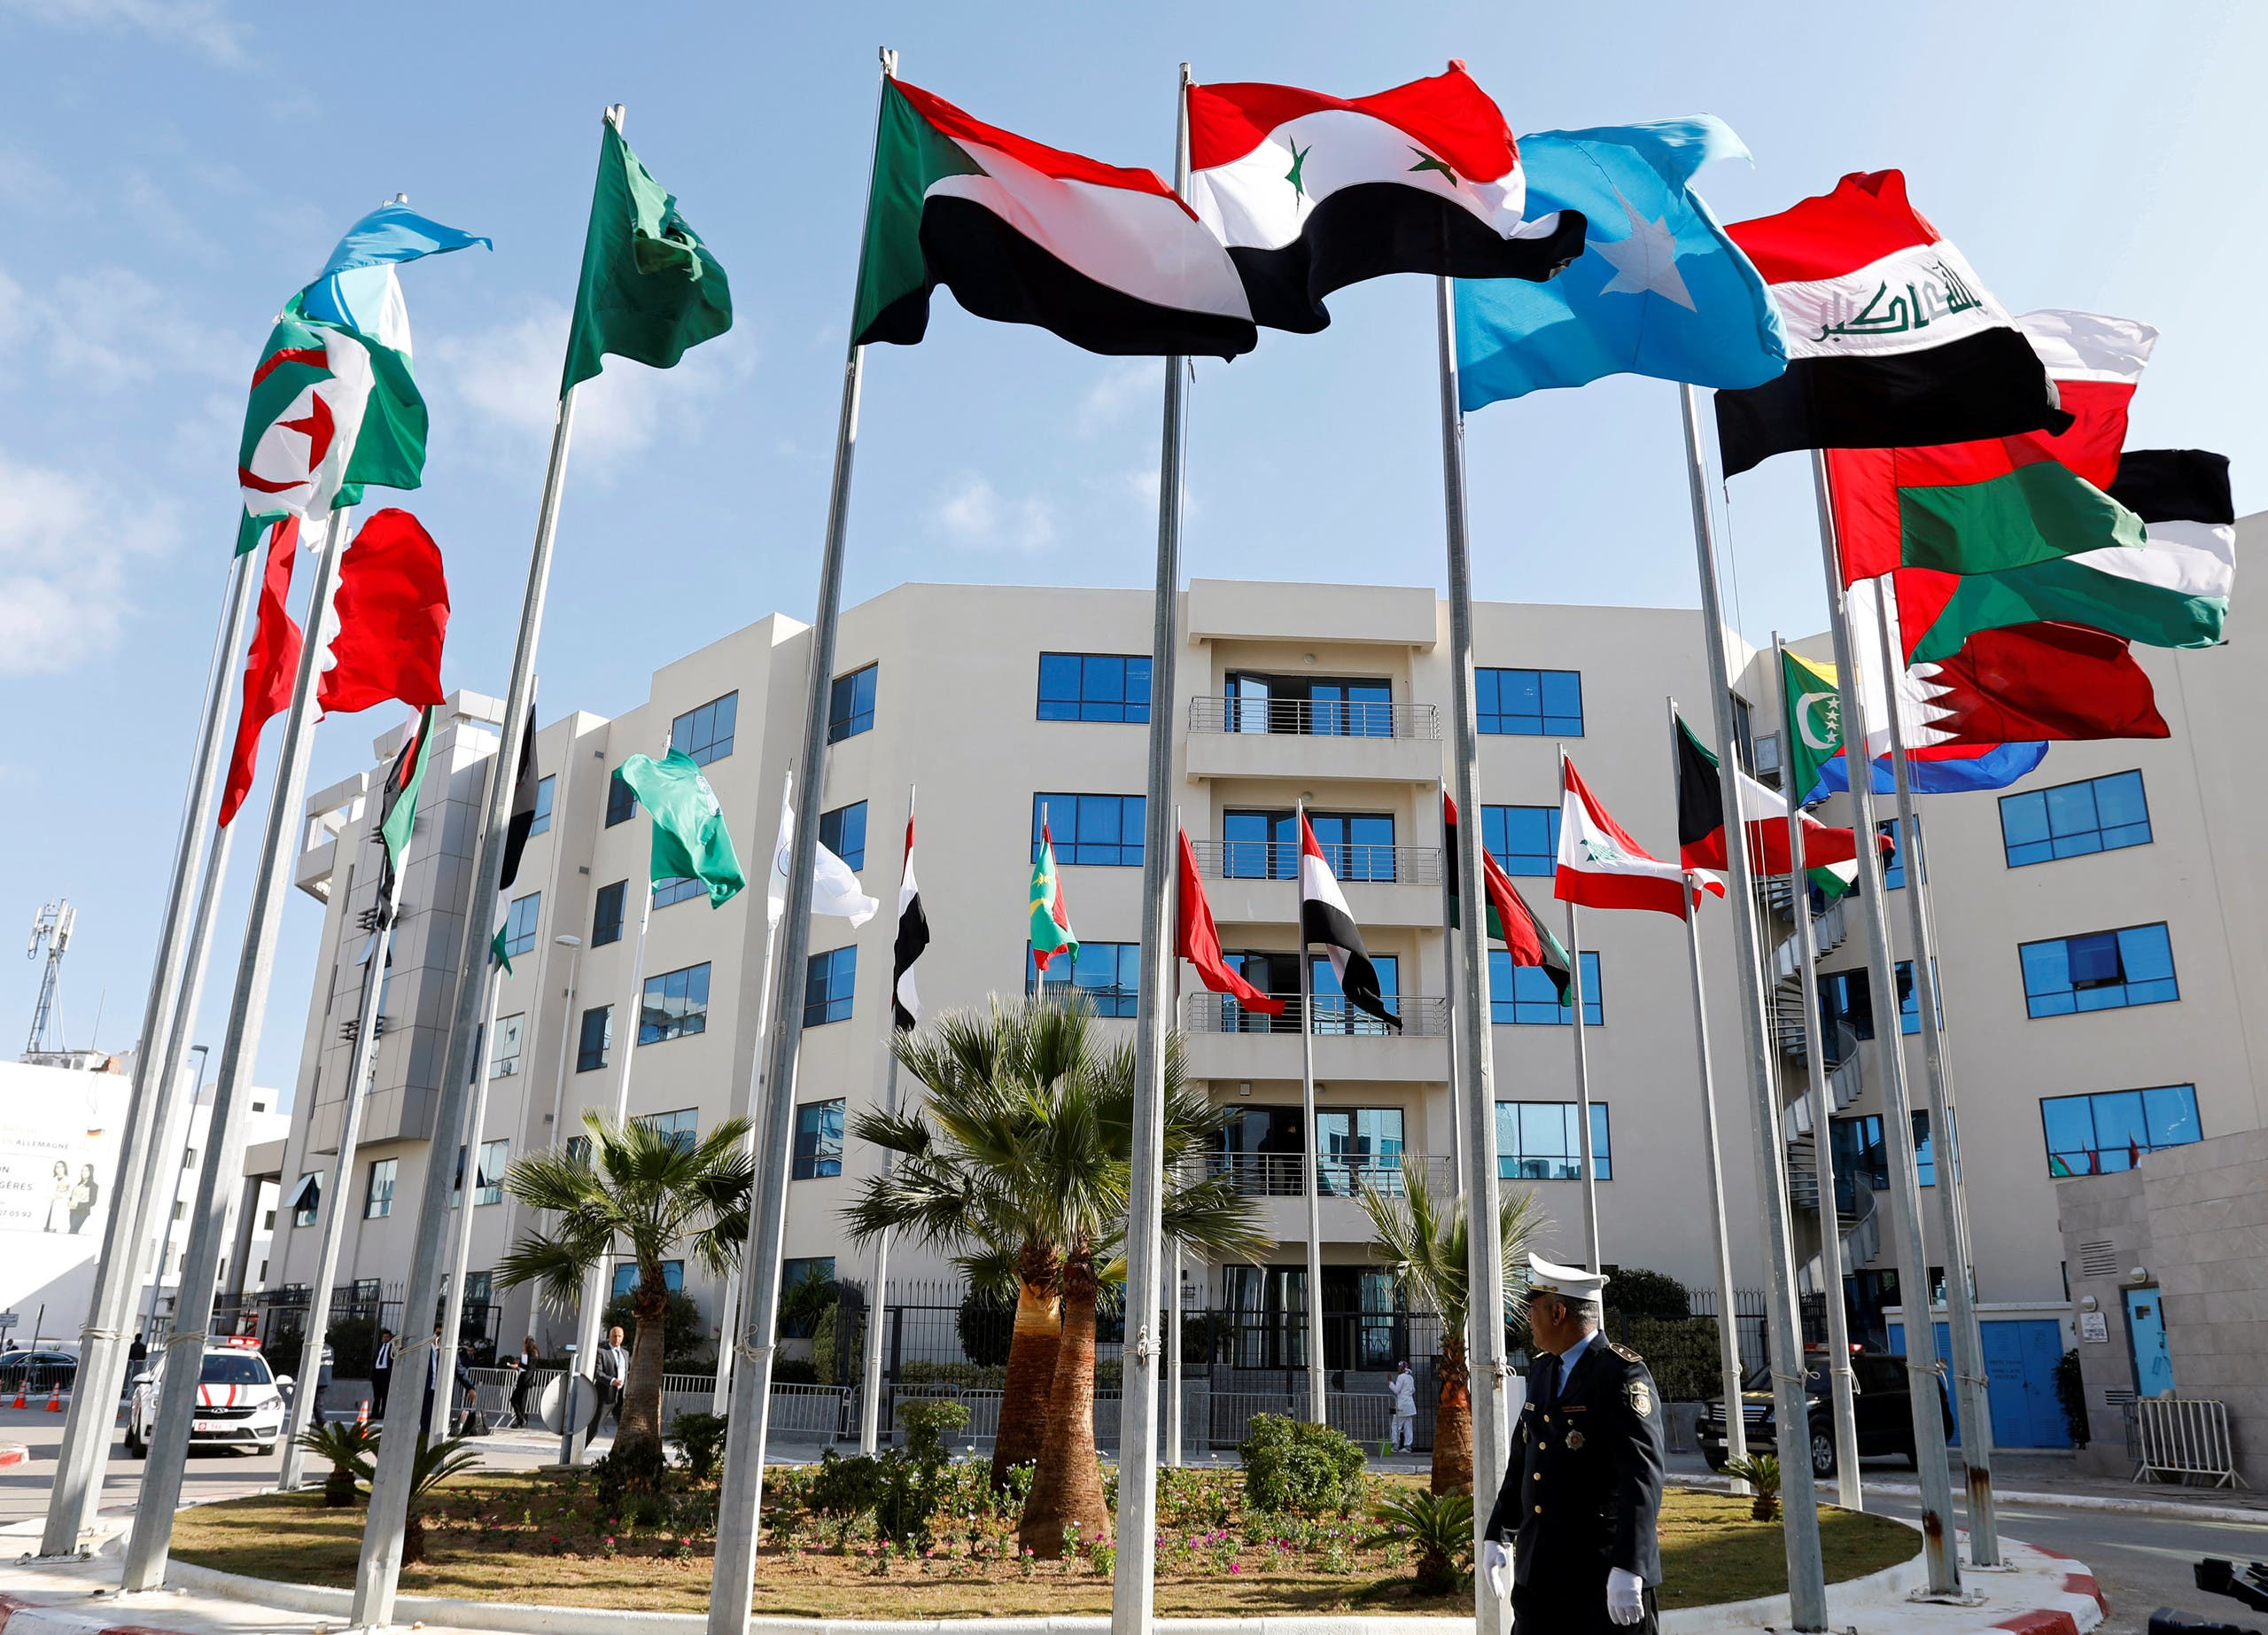 Flags are pictured before a preparatory meeting between Arab foreign ministers ahead of the Arab summit in Tunis, Tunisia March 29, 2019. (File photo: Reuters)